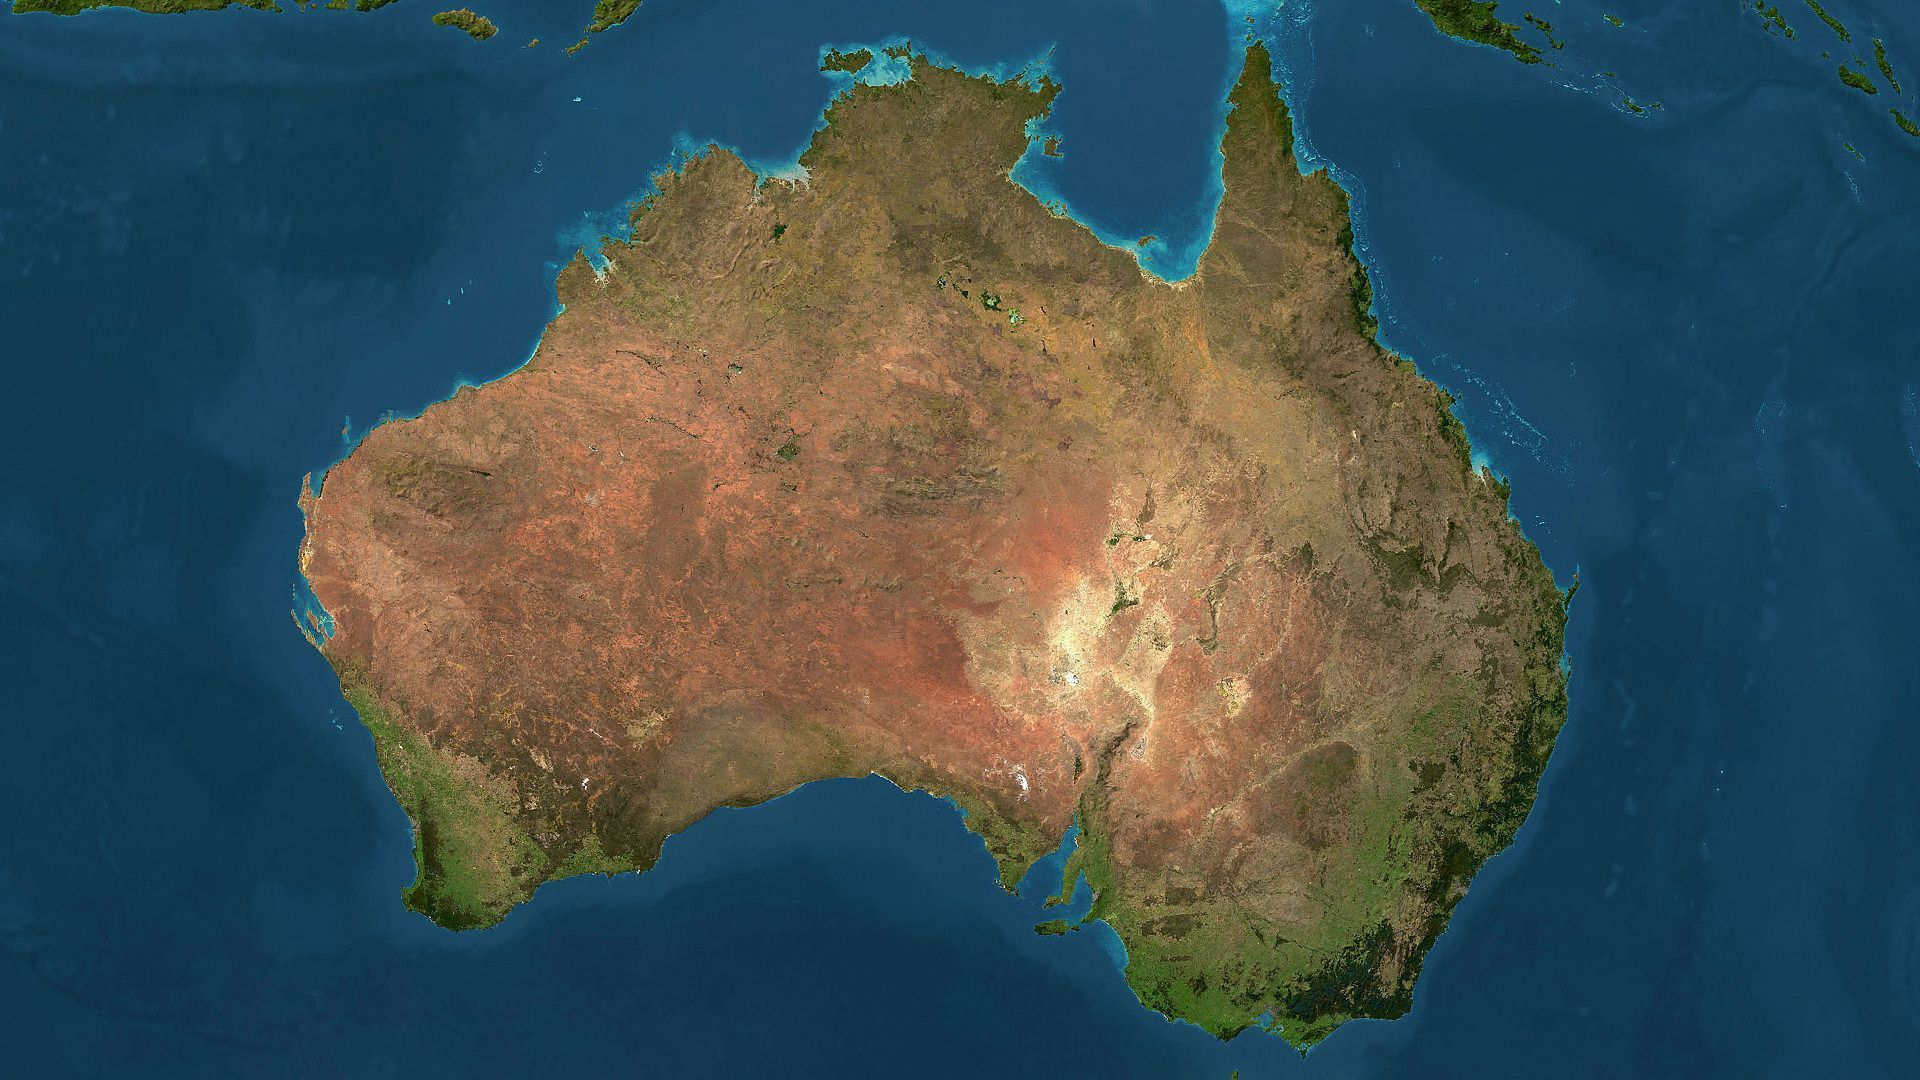 an overview of the continent of australia Australia is a country located in the southern hemisphere, south of asia, near indonesia, new zealand, and papua new guineait is an island nation that comprises the australian continent as well as the island of tasmania and some other small islands.